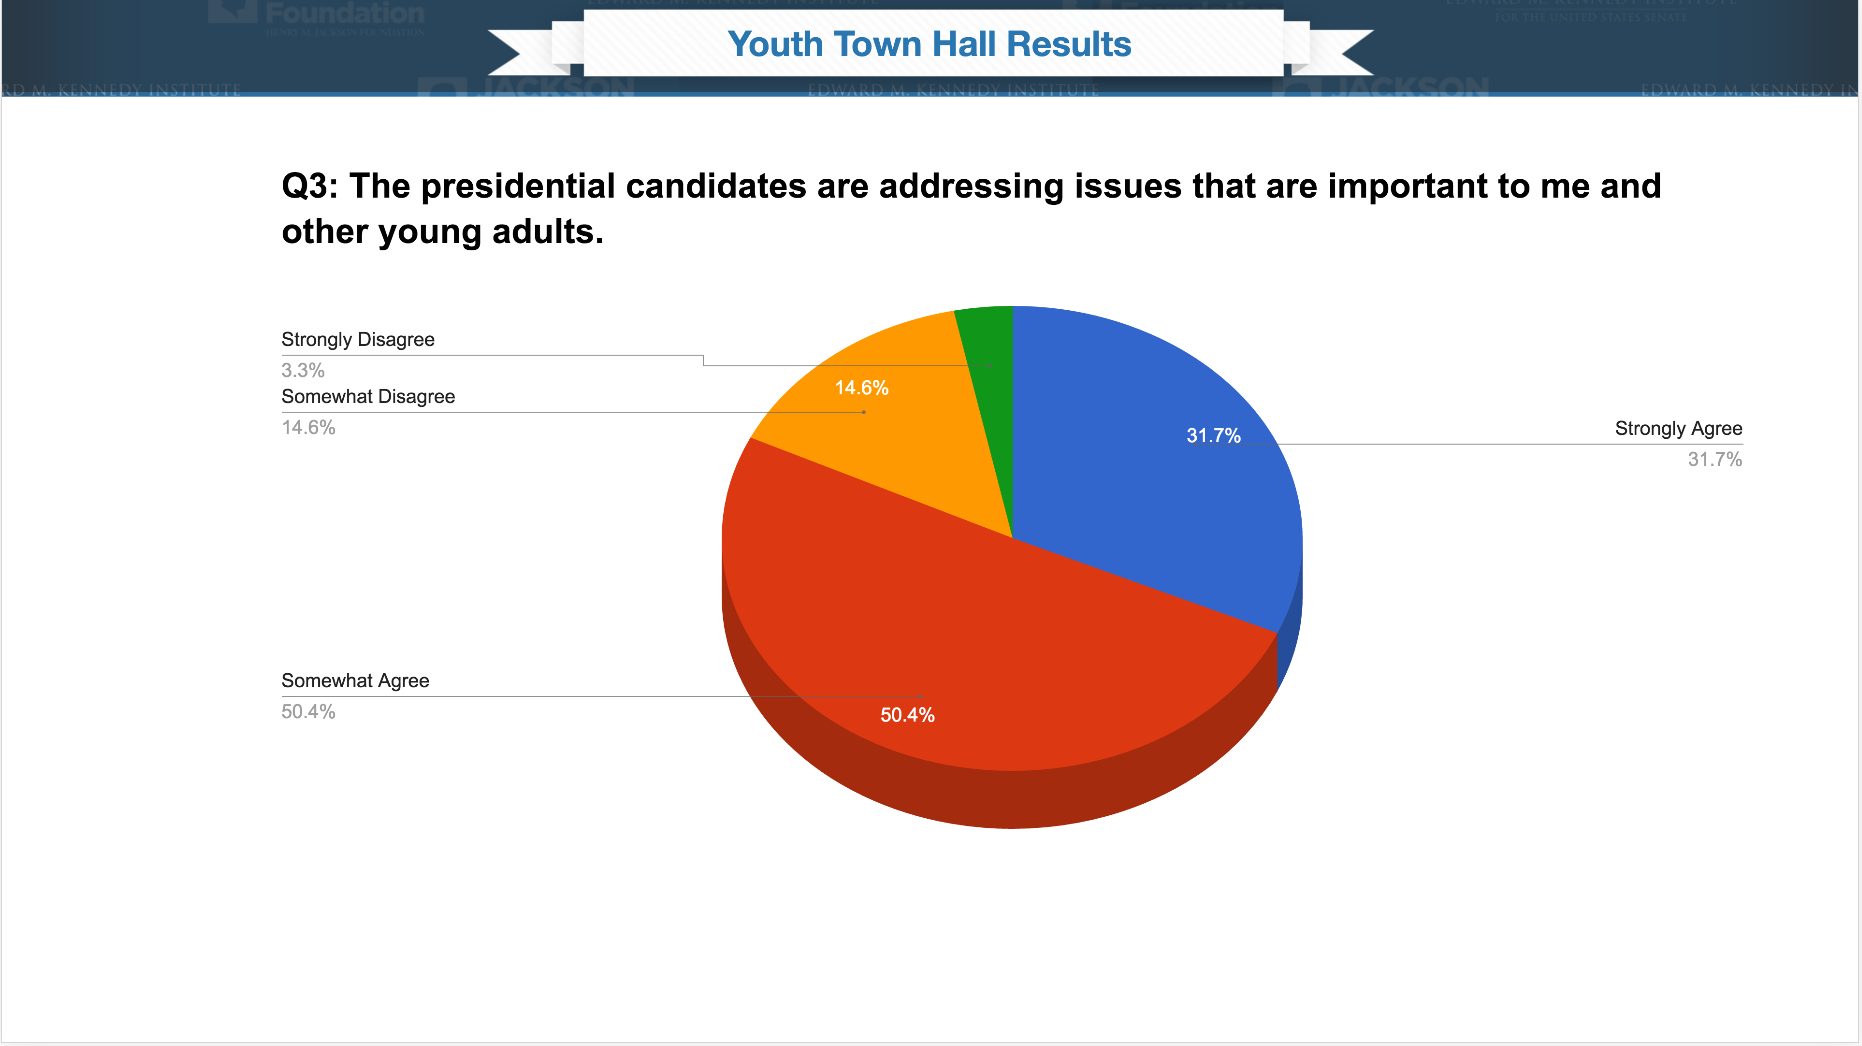 Poll results for Q3, The Presidential candidates are answering questions that are important to me and other young adults. 31.7% of attendees strongly agreed with the statement, 50.4% somewhat agreed, 14.6% somewhat disagreed, and 3.3% strongly disagreed.